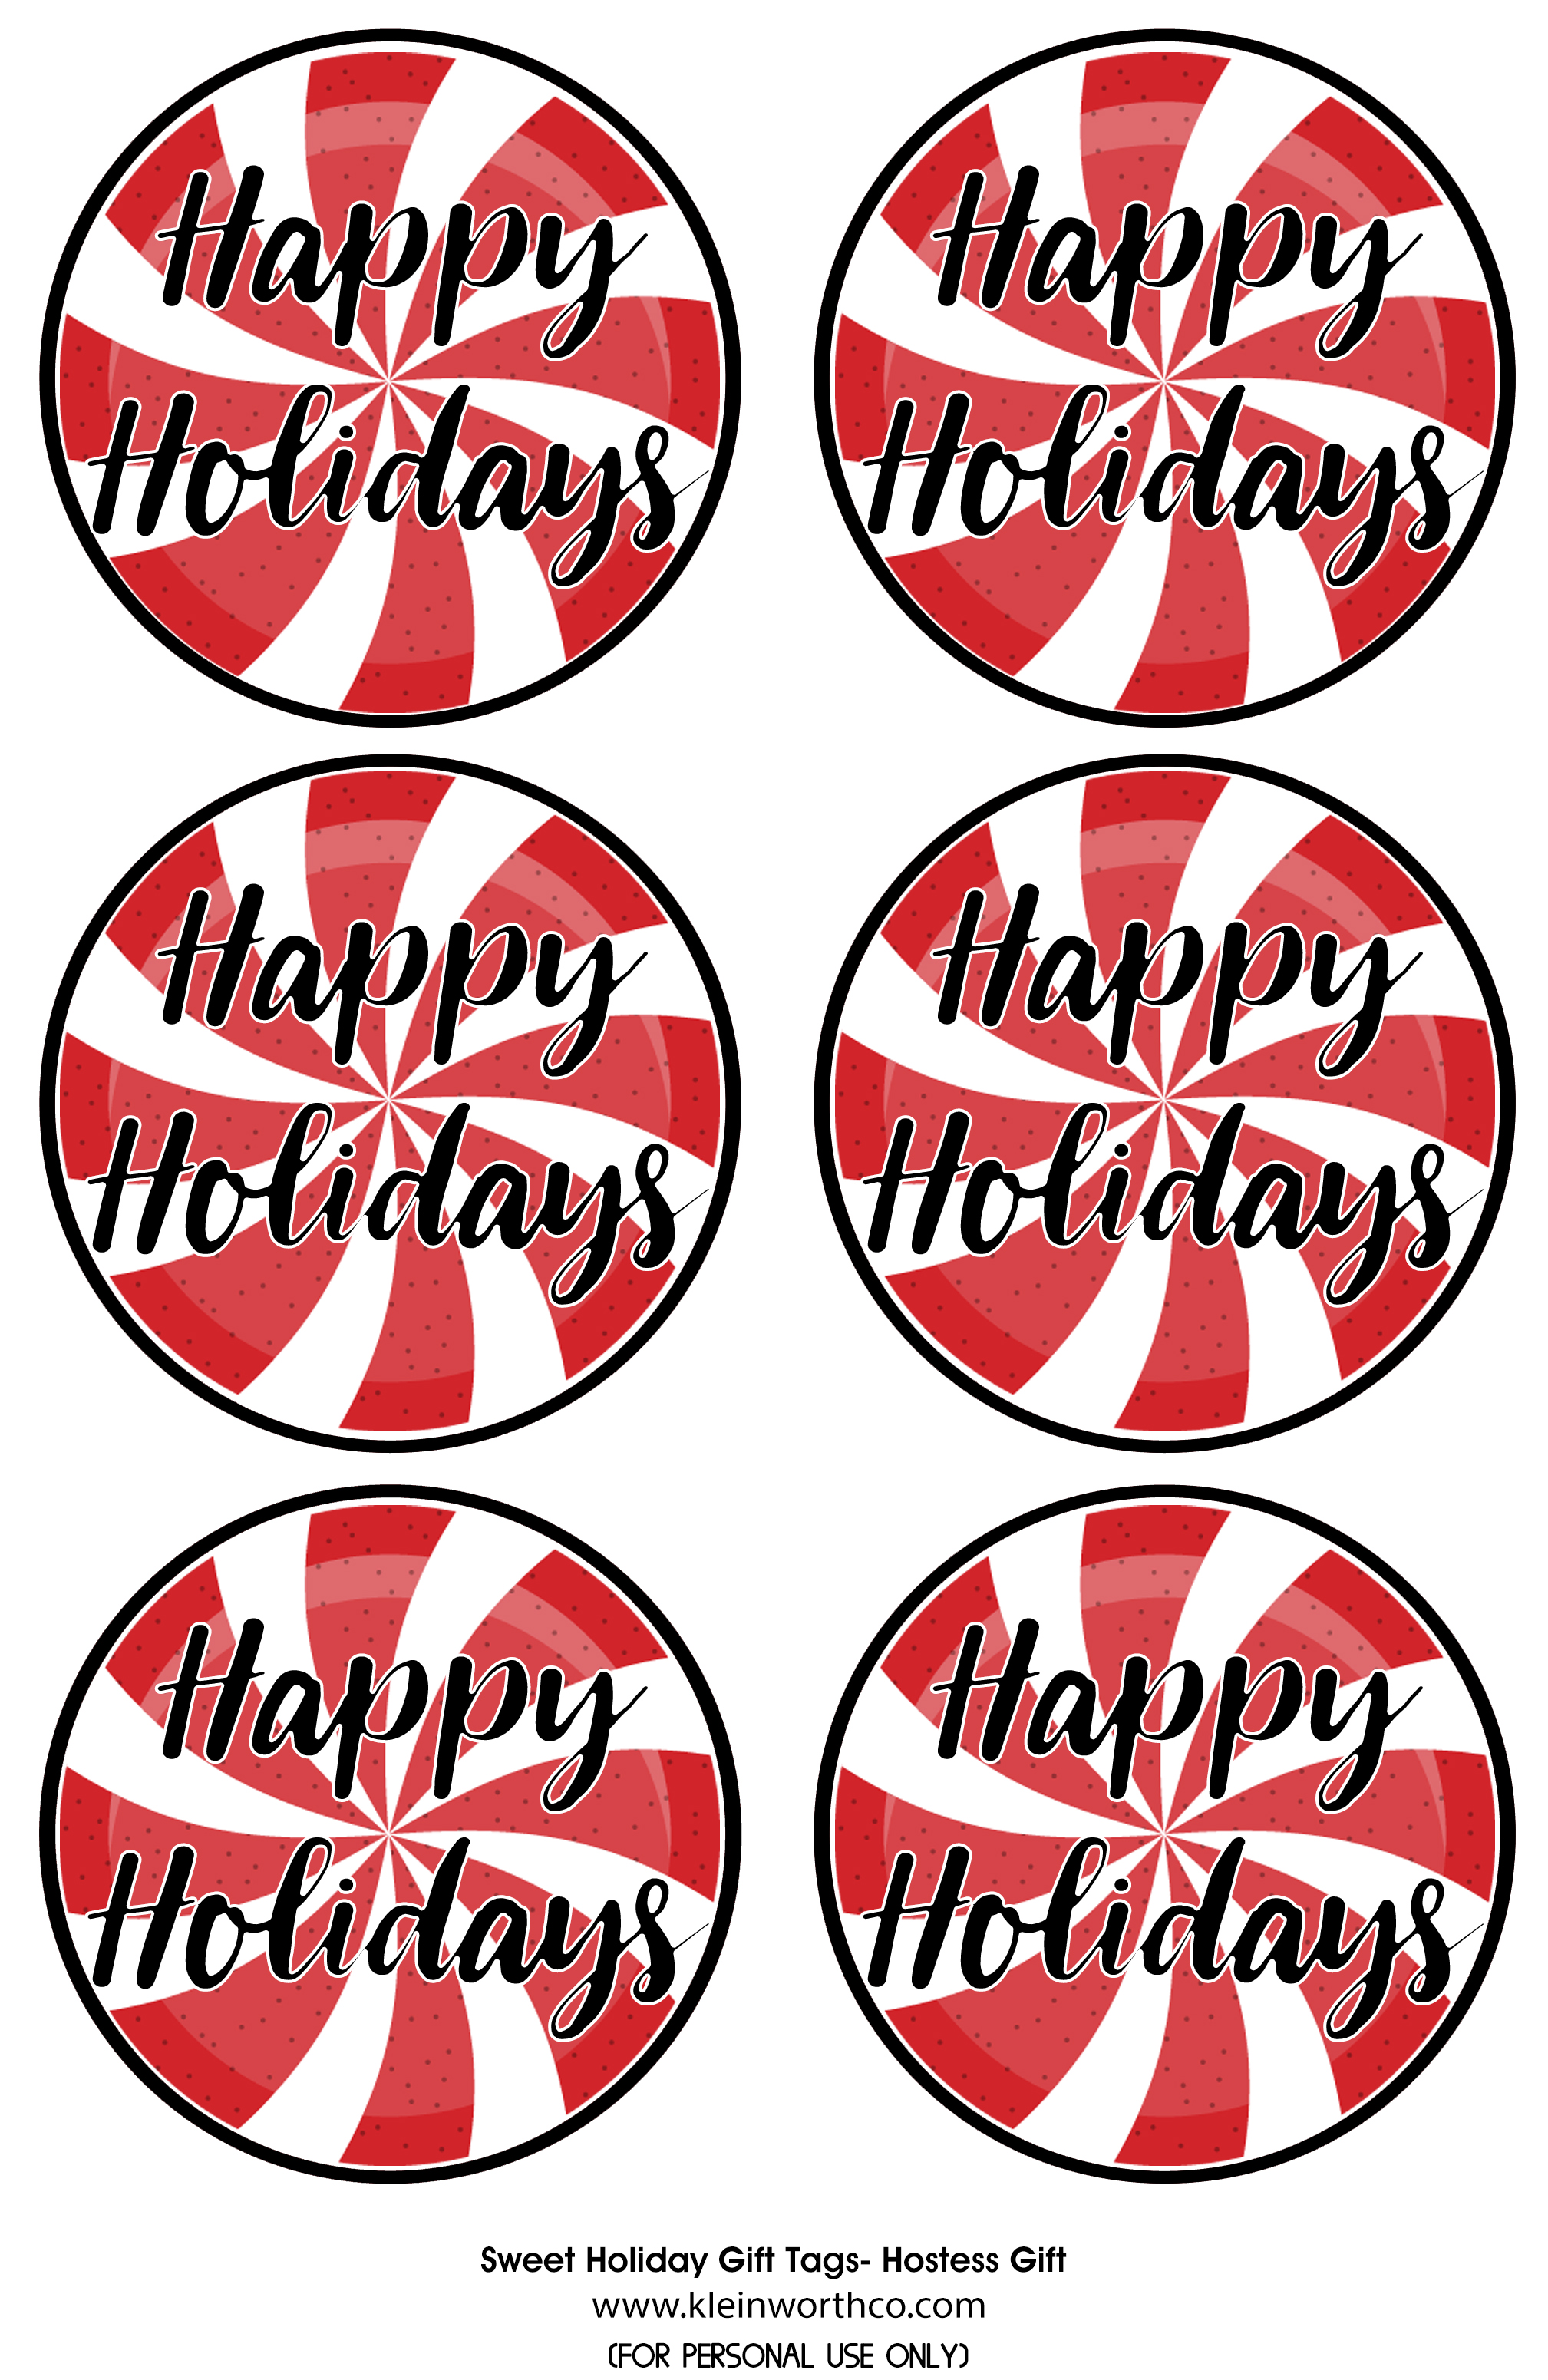 Sweet holiday gift tags free printable kleinworth co download free printable tags here negle Gallery